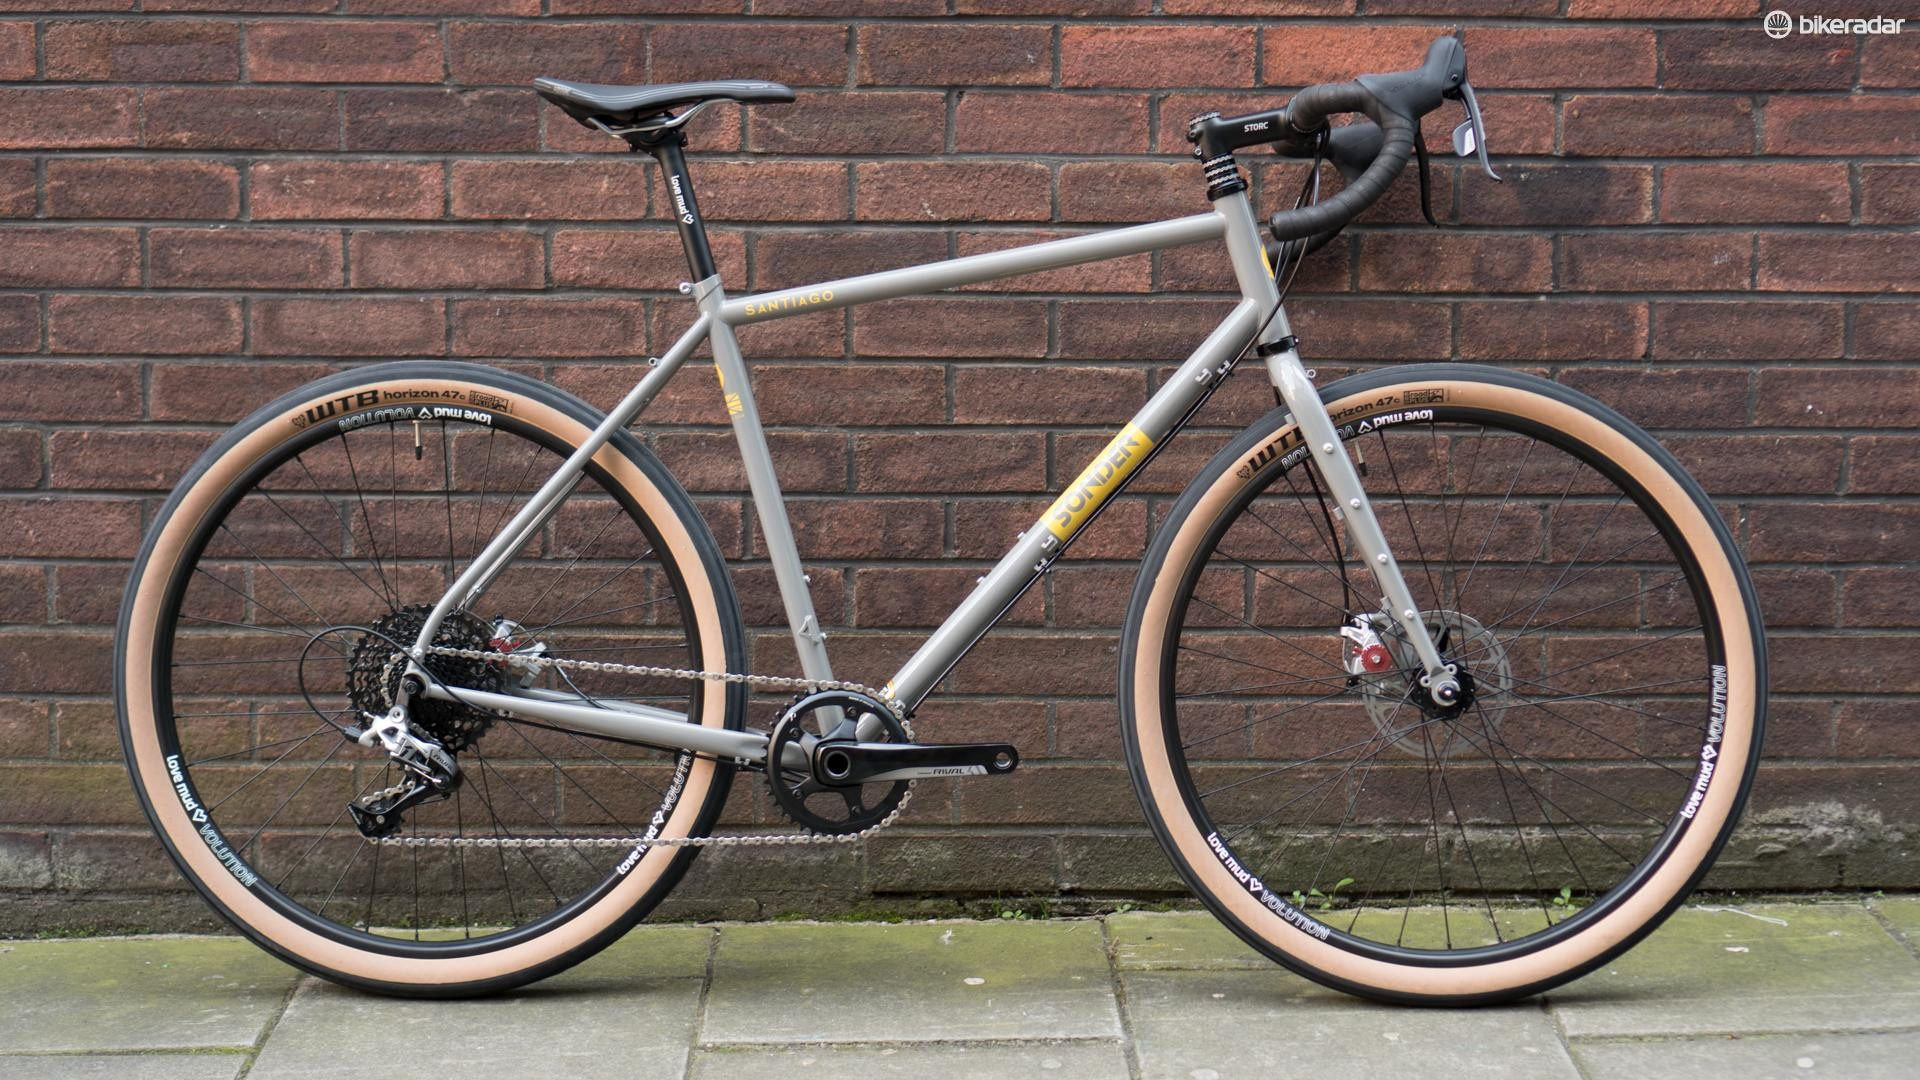 The Sonder Santiago is a rather handsome do-it-all machine